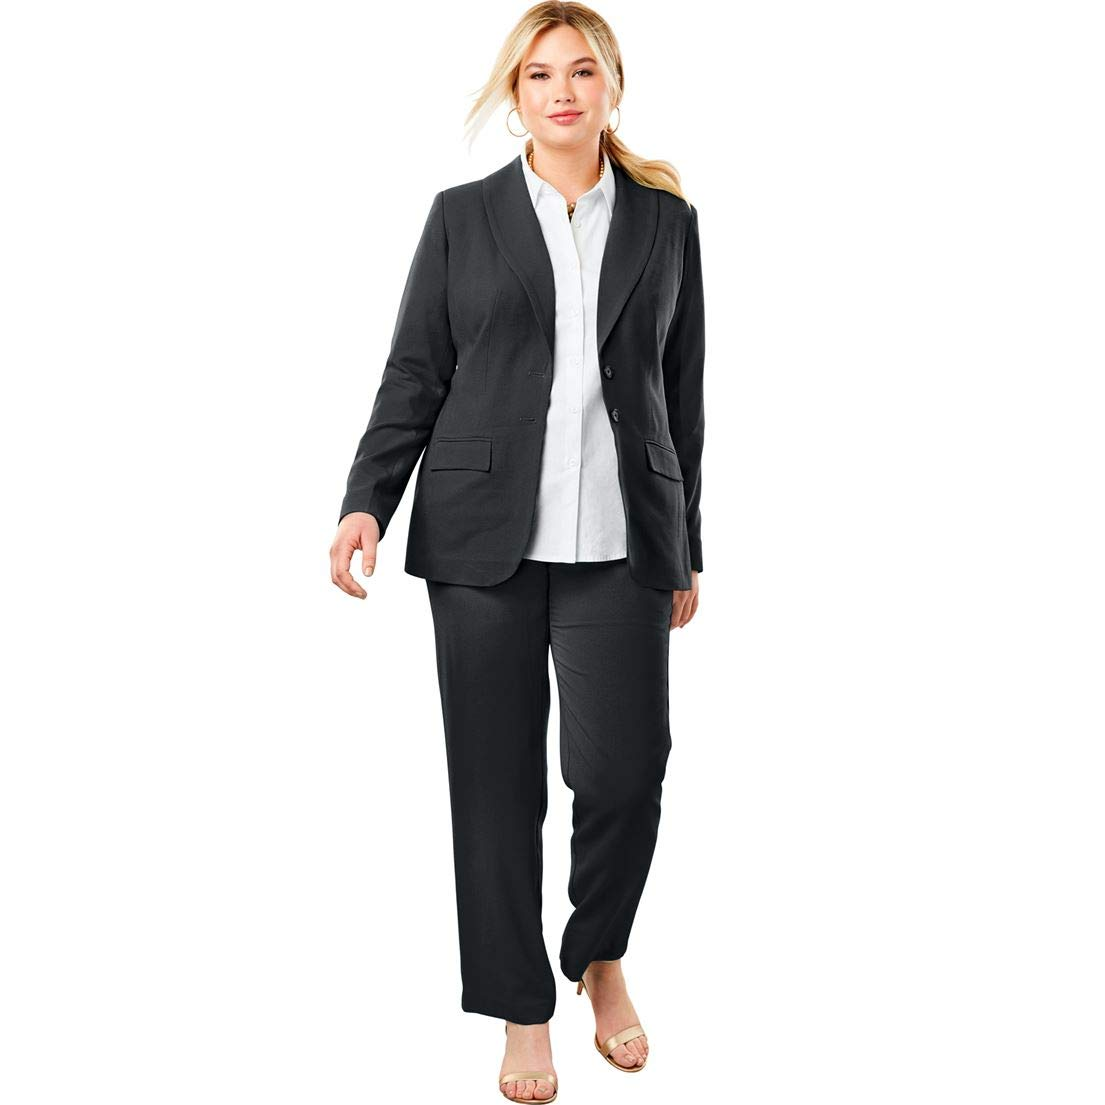 Jessica London Women's Plus Size Single Breasted Pant Suit - Black, 20 W